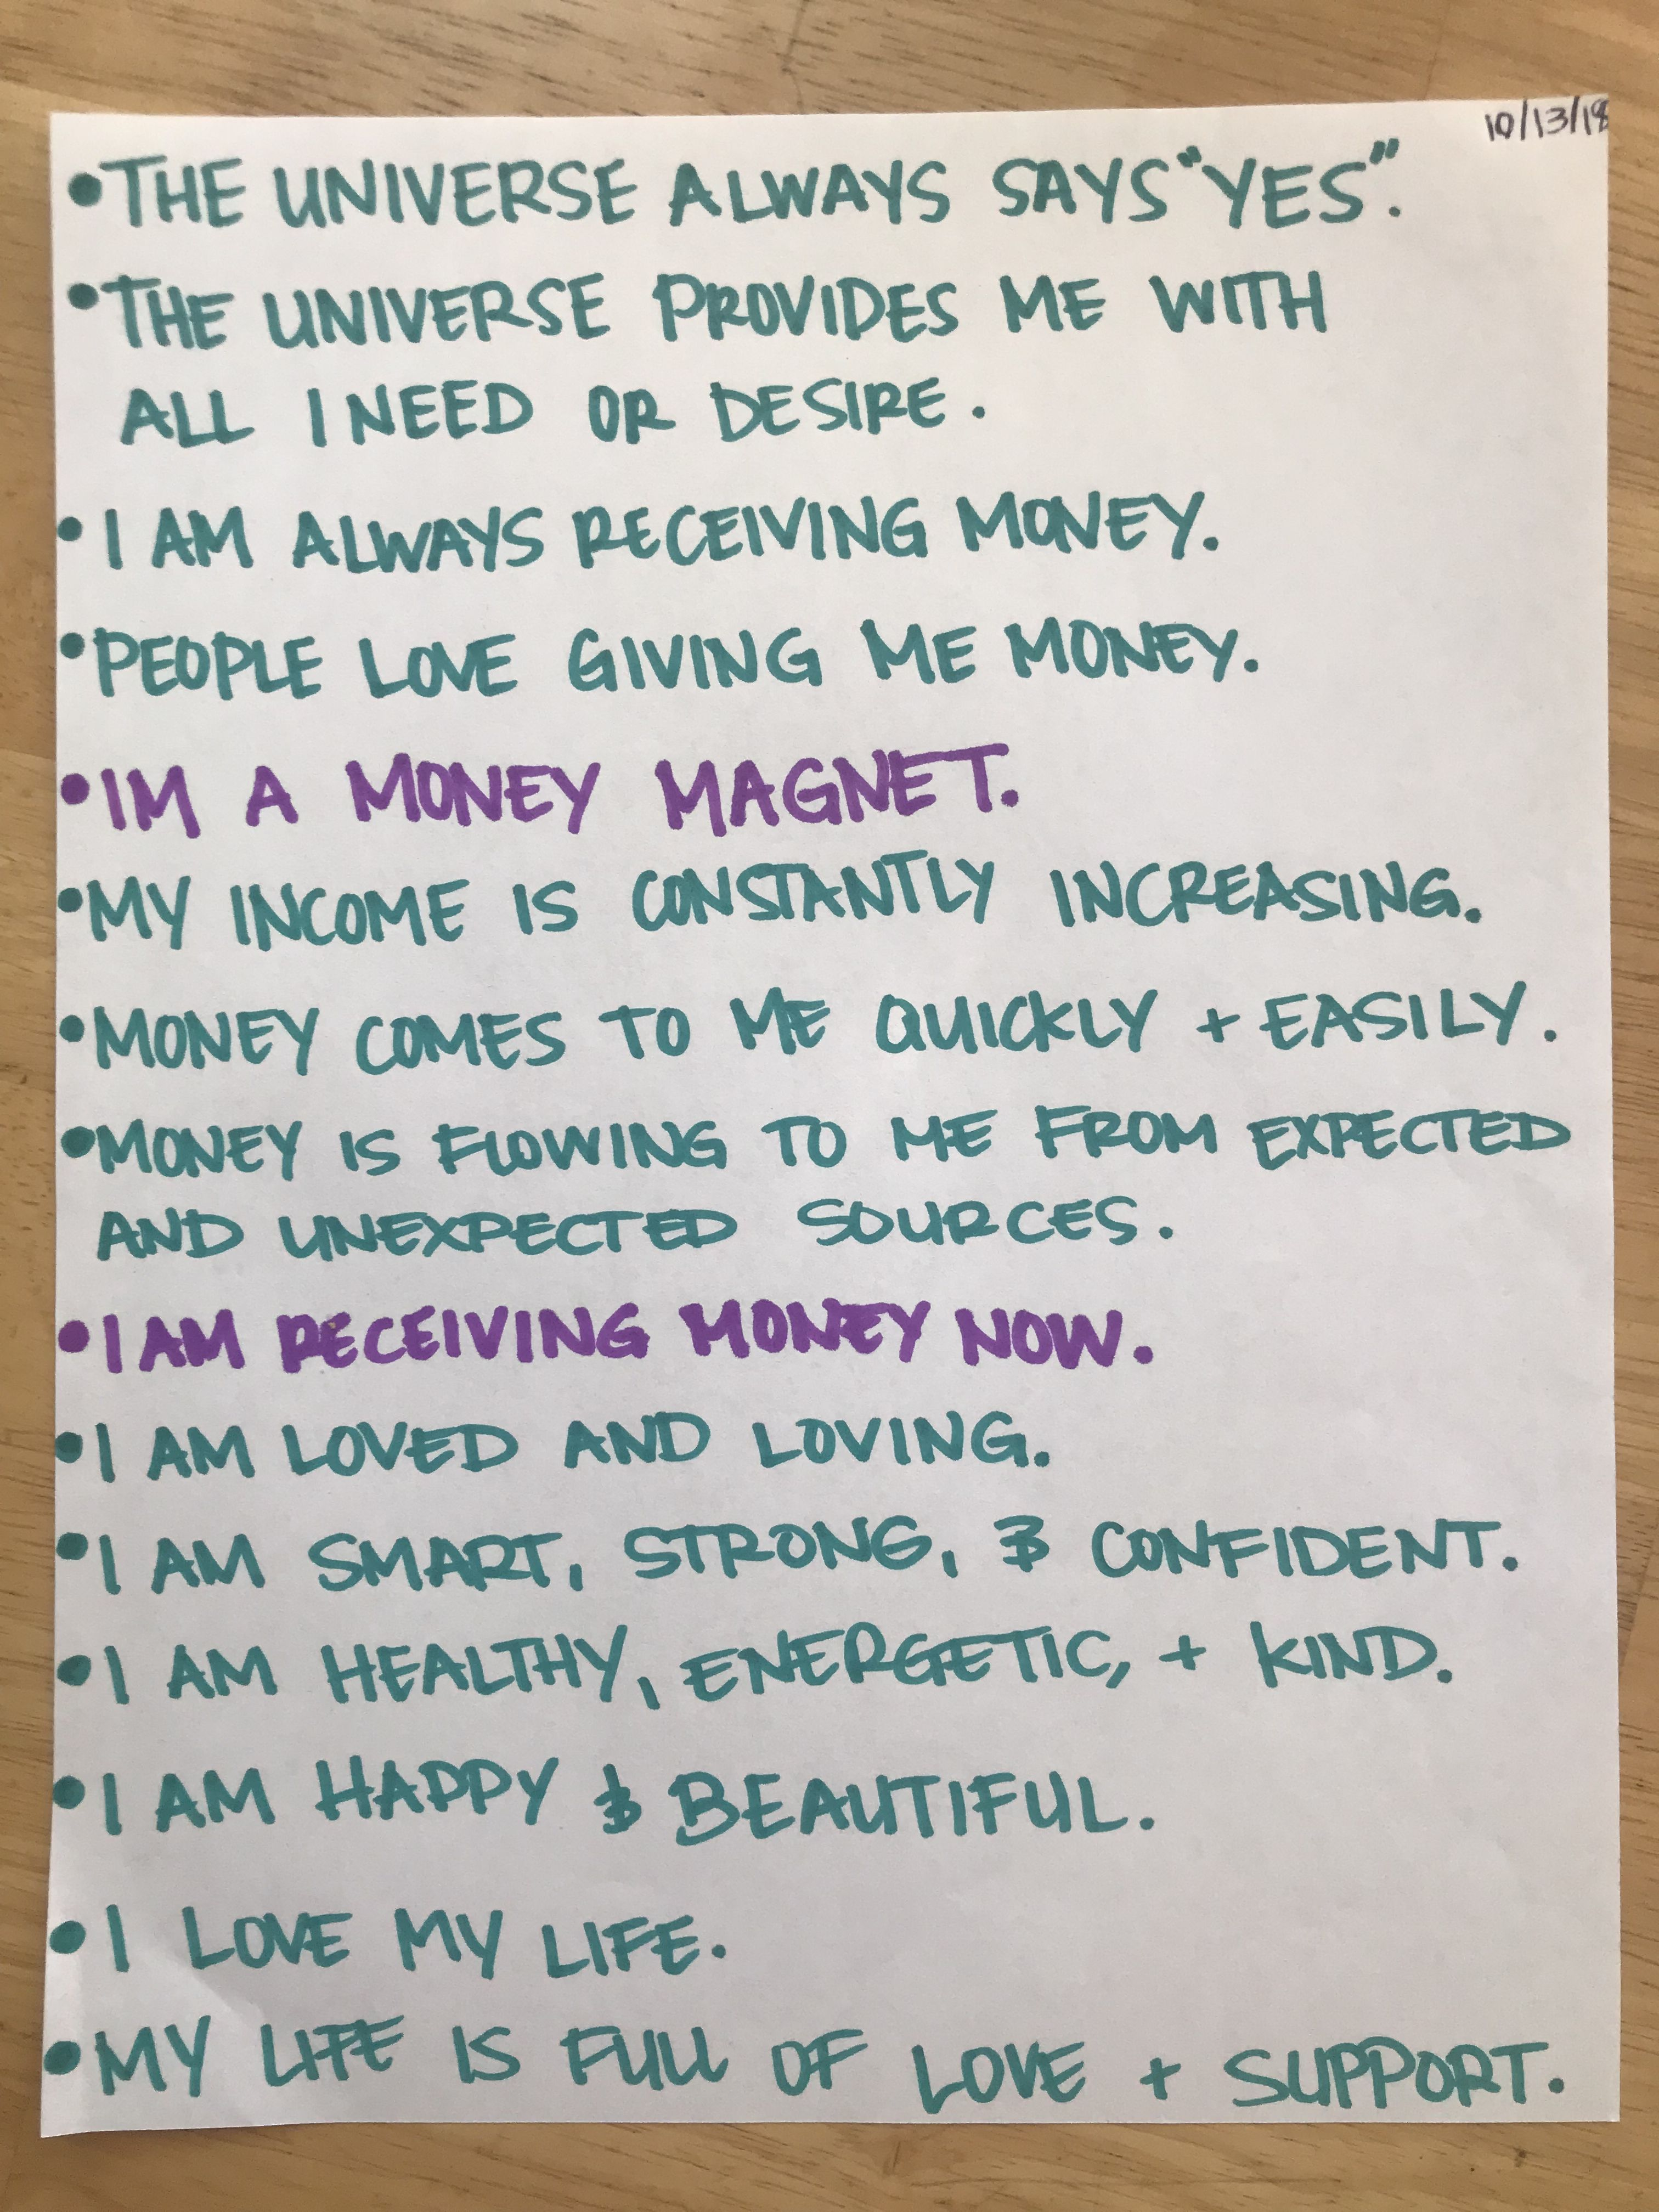 Loa affirmations law of attraction positivity believe